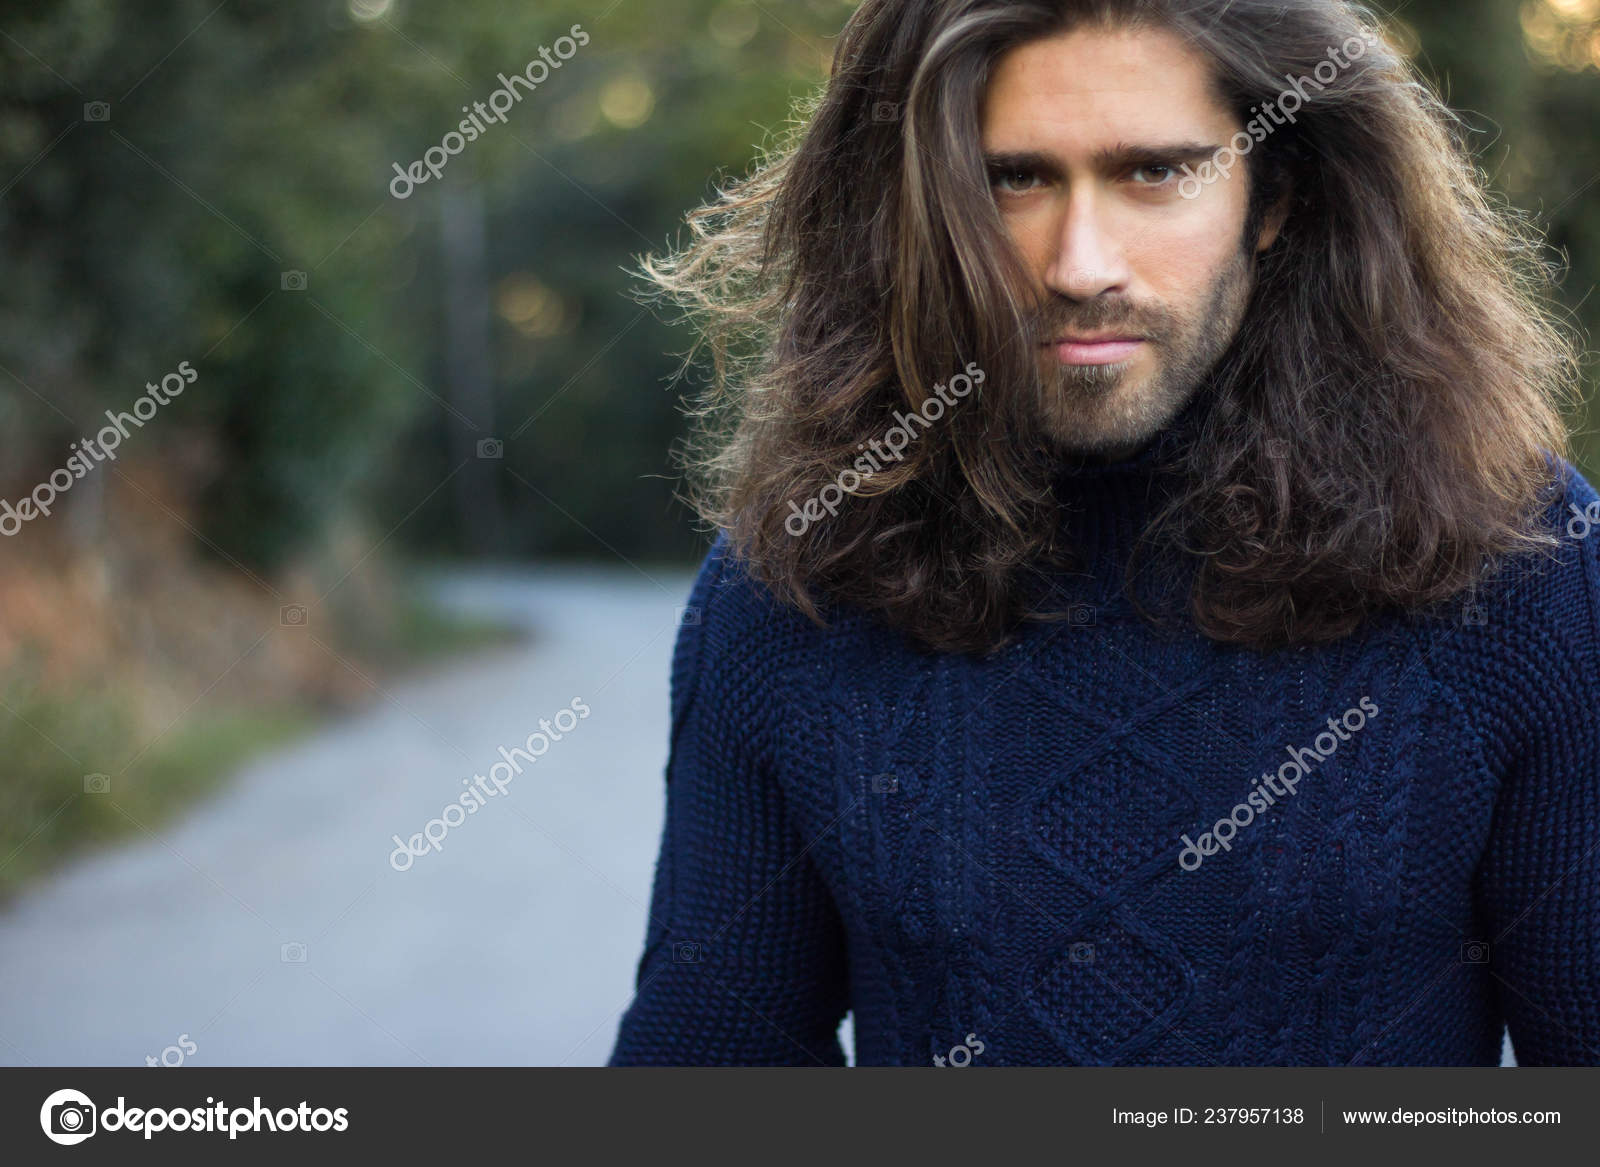 Close View Portrait Beard Hipster Man Long Dark Hair Stock Photo Image By C Marcjulsmail Gmail Com 237957138